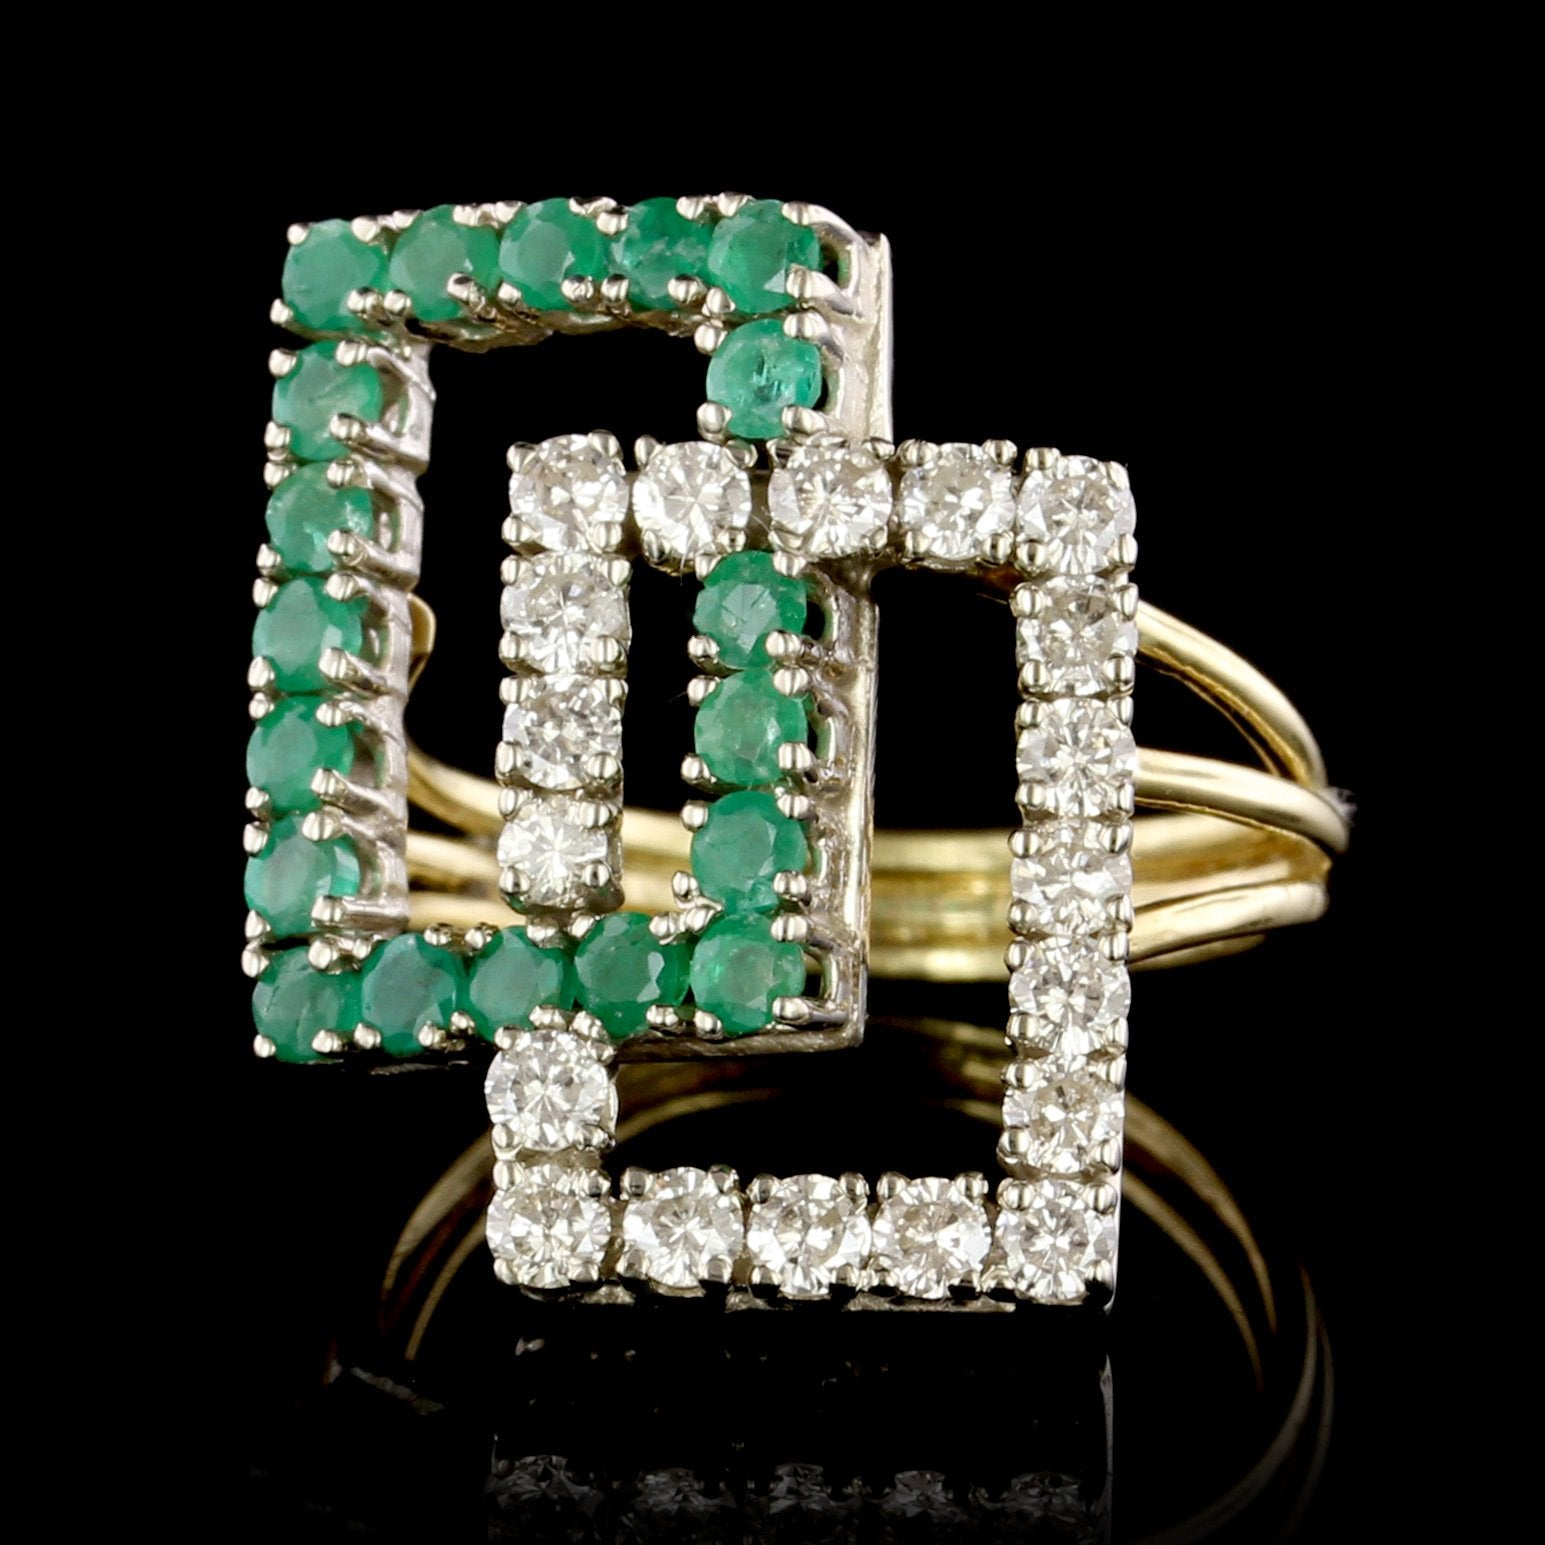 18K Two-tone Gold Estate Emerald and Diamond Ring